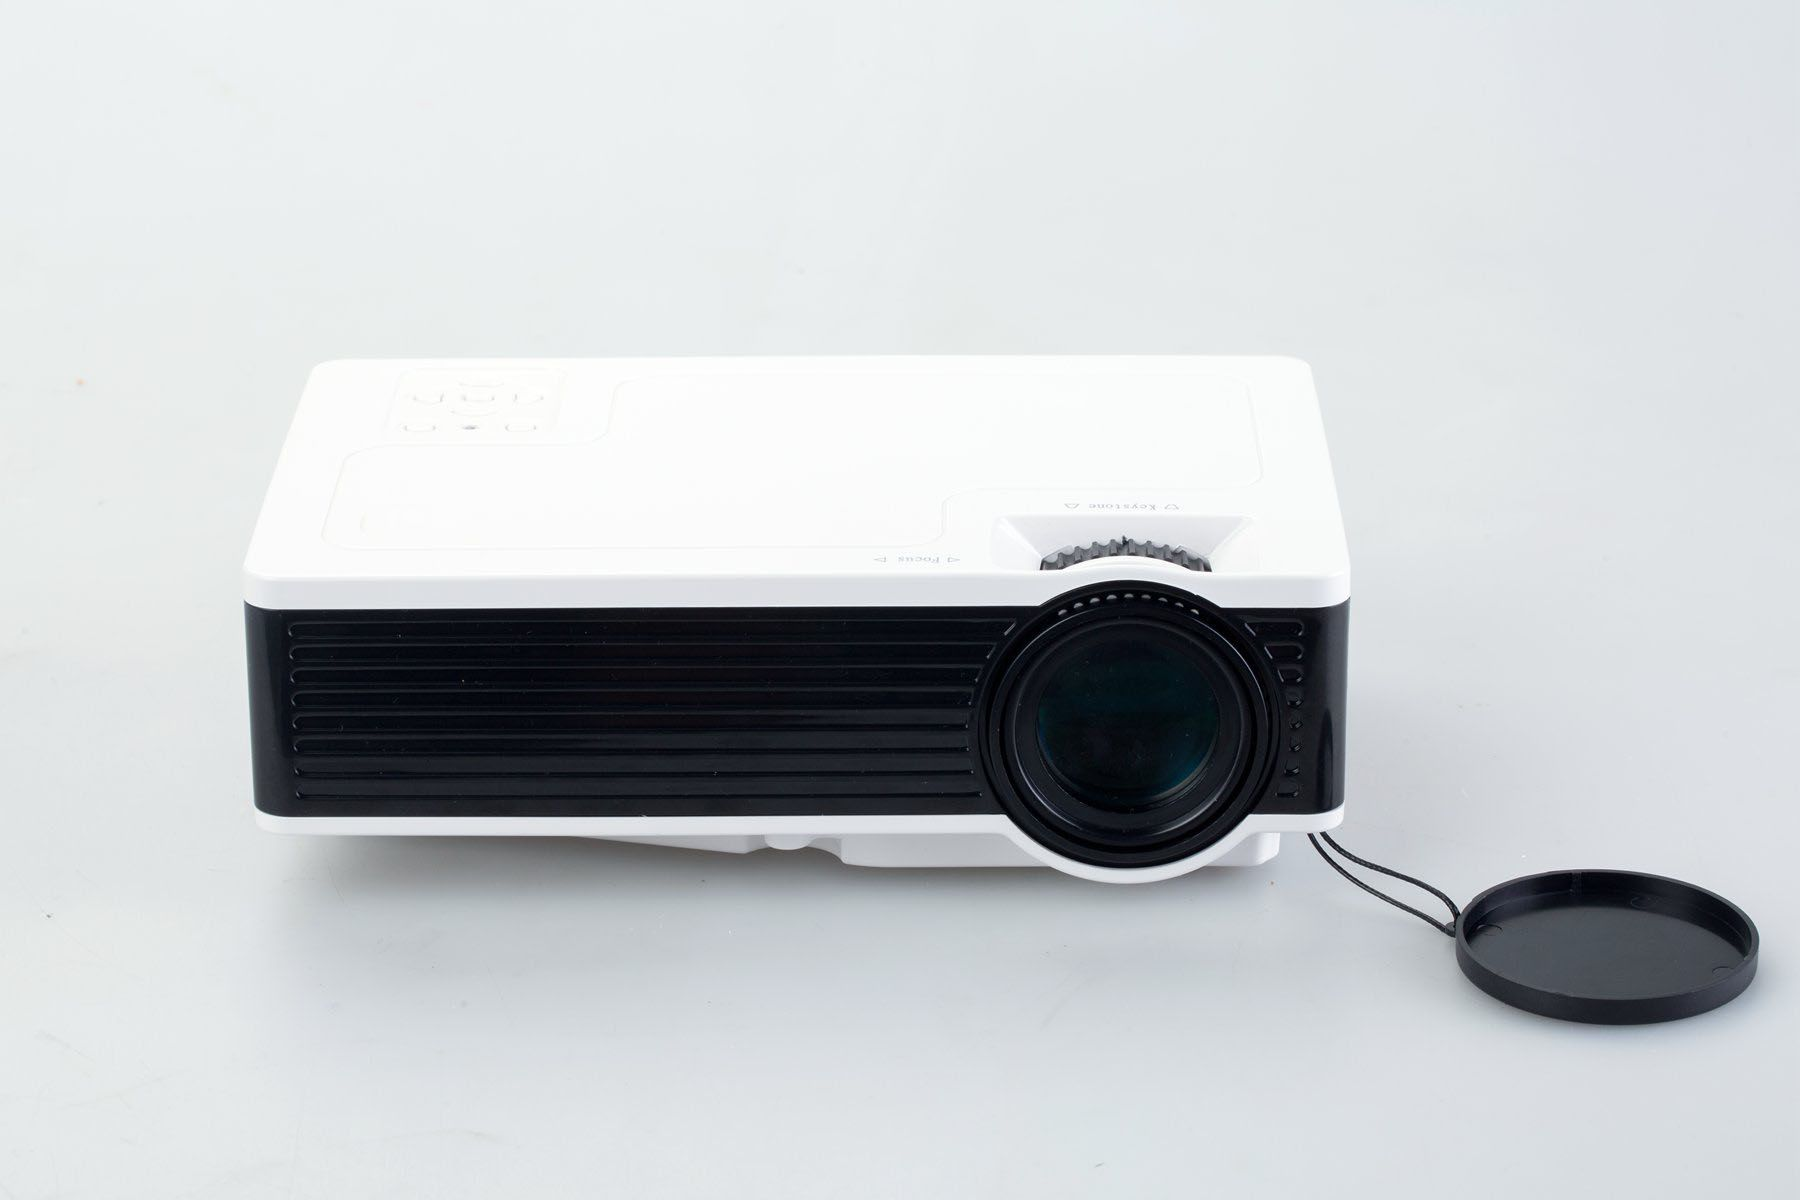 WeJoy JX-23 1500Lumens Video Home Projector 150 Inches Display Support 1080P HDMI VGA USB SD AV input for Home Cinema